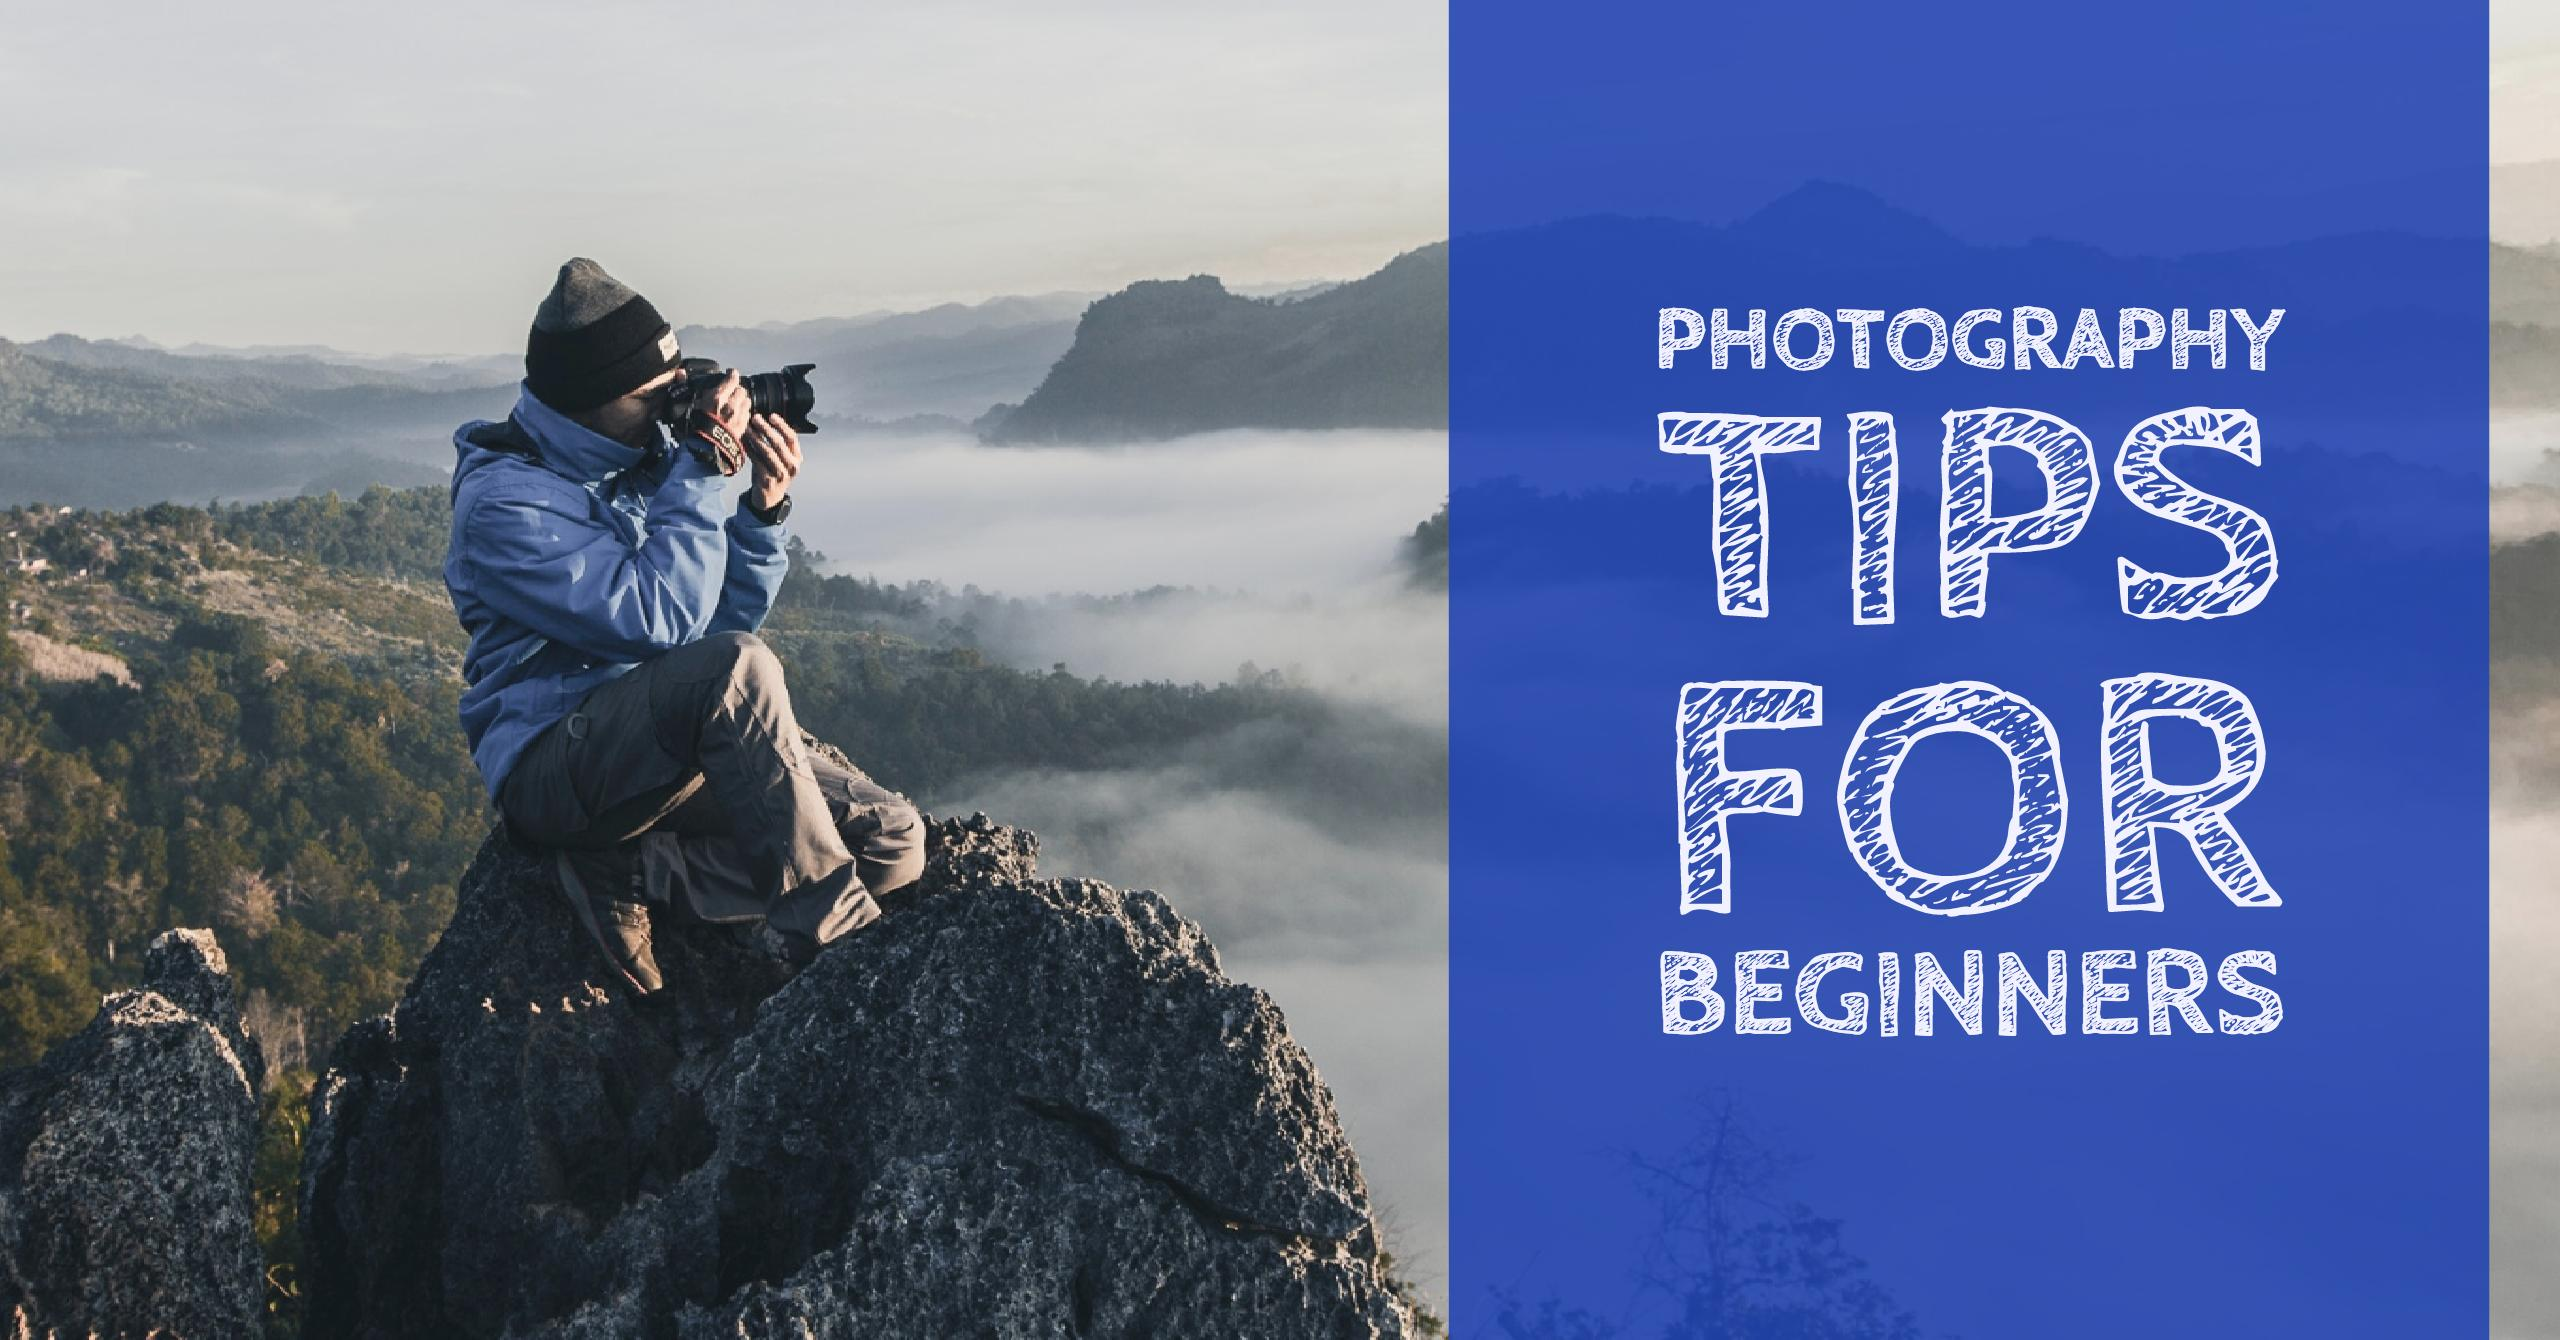 photography tips and tutorials for beginners rh digital photography school com Best DSLR for Beginner Photographer Websites for Beginners Photography